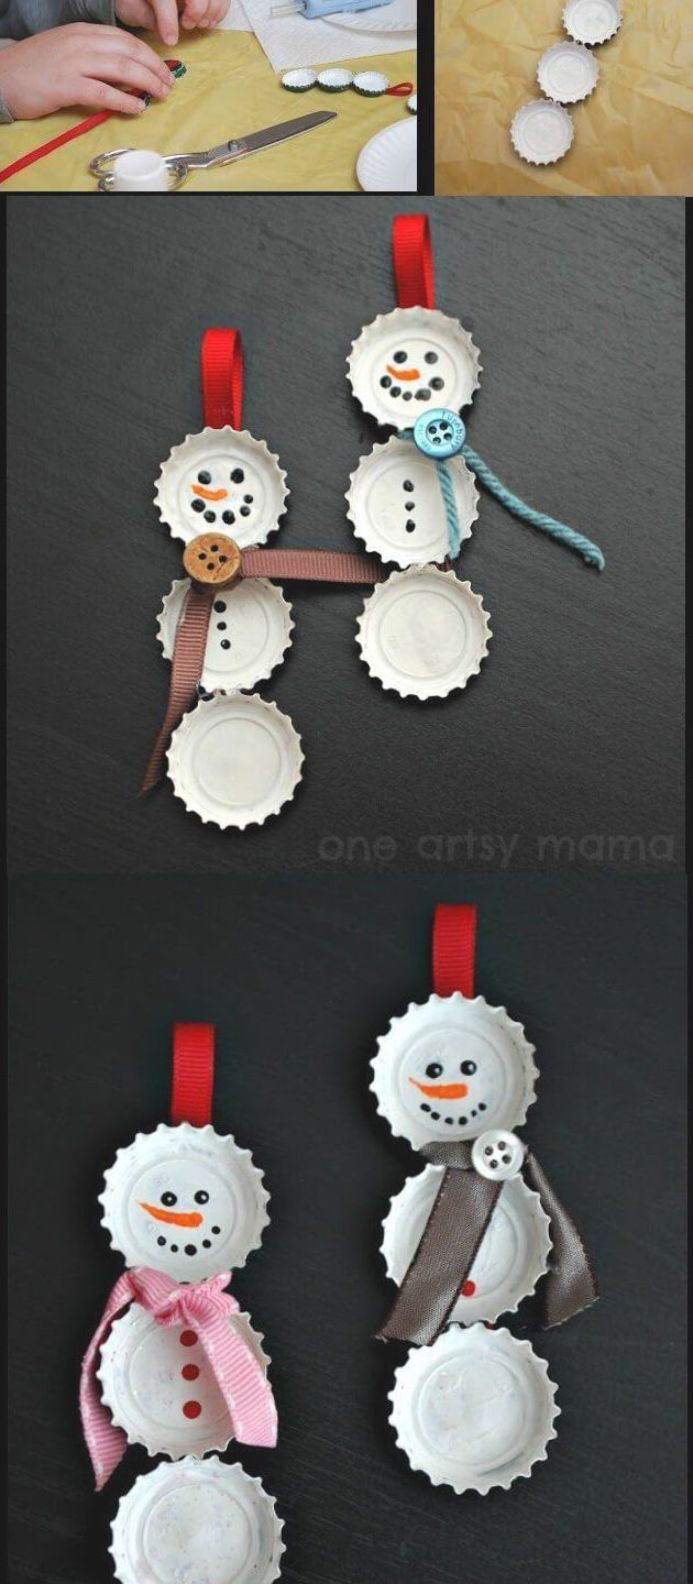 Bottle Cap Snowman | Cute and Easy Christmas Ornament Ideas #christmas #christmasdecor #christmascrafts #christmasornaments